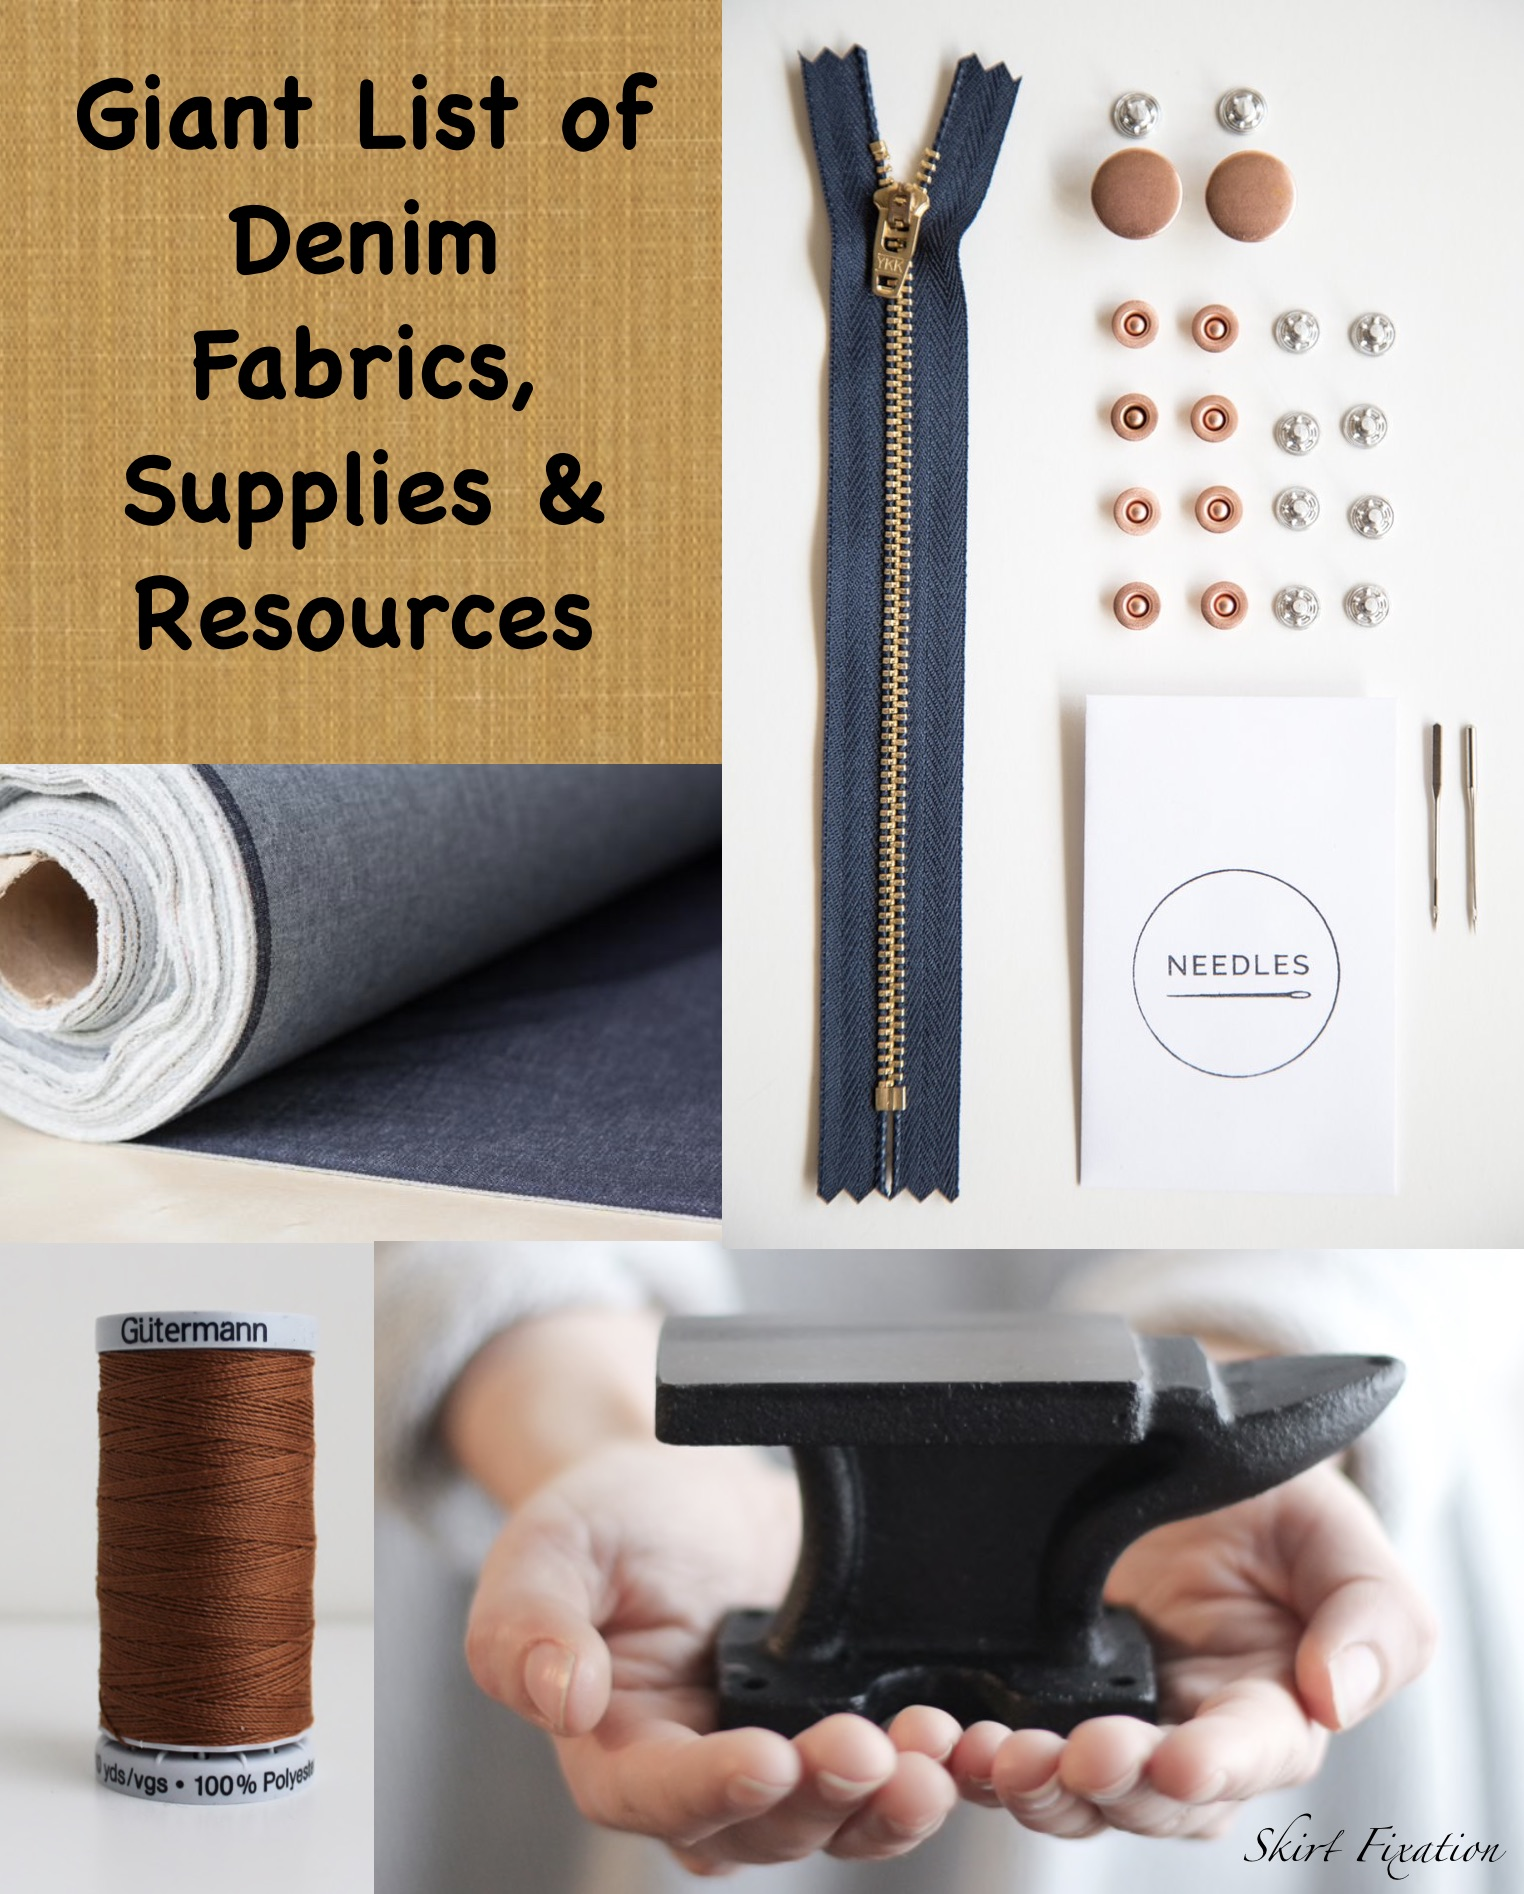 Giant list of denim fabric, supplies and resources compiled by Skirt Fixation